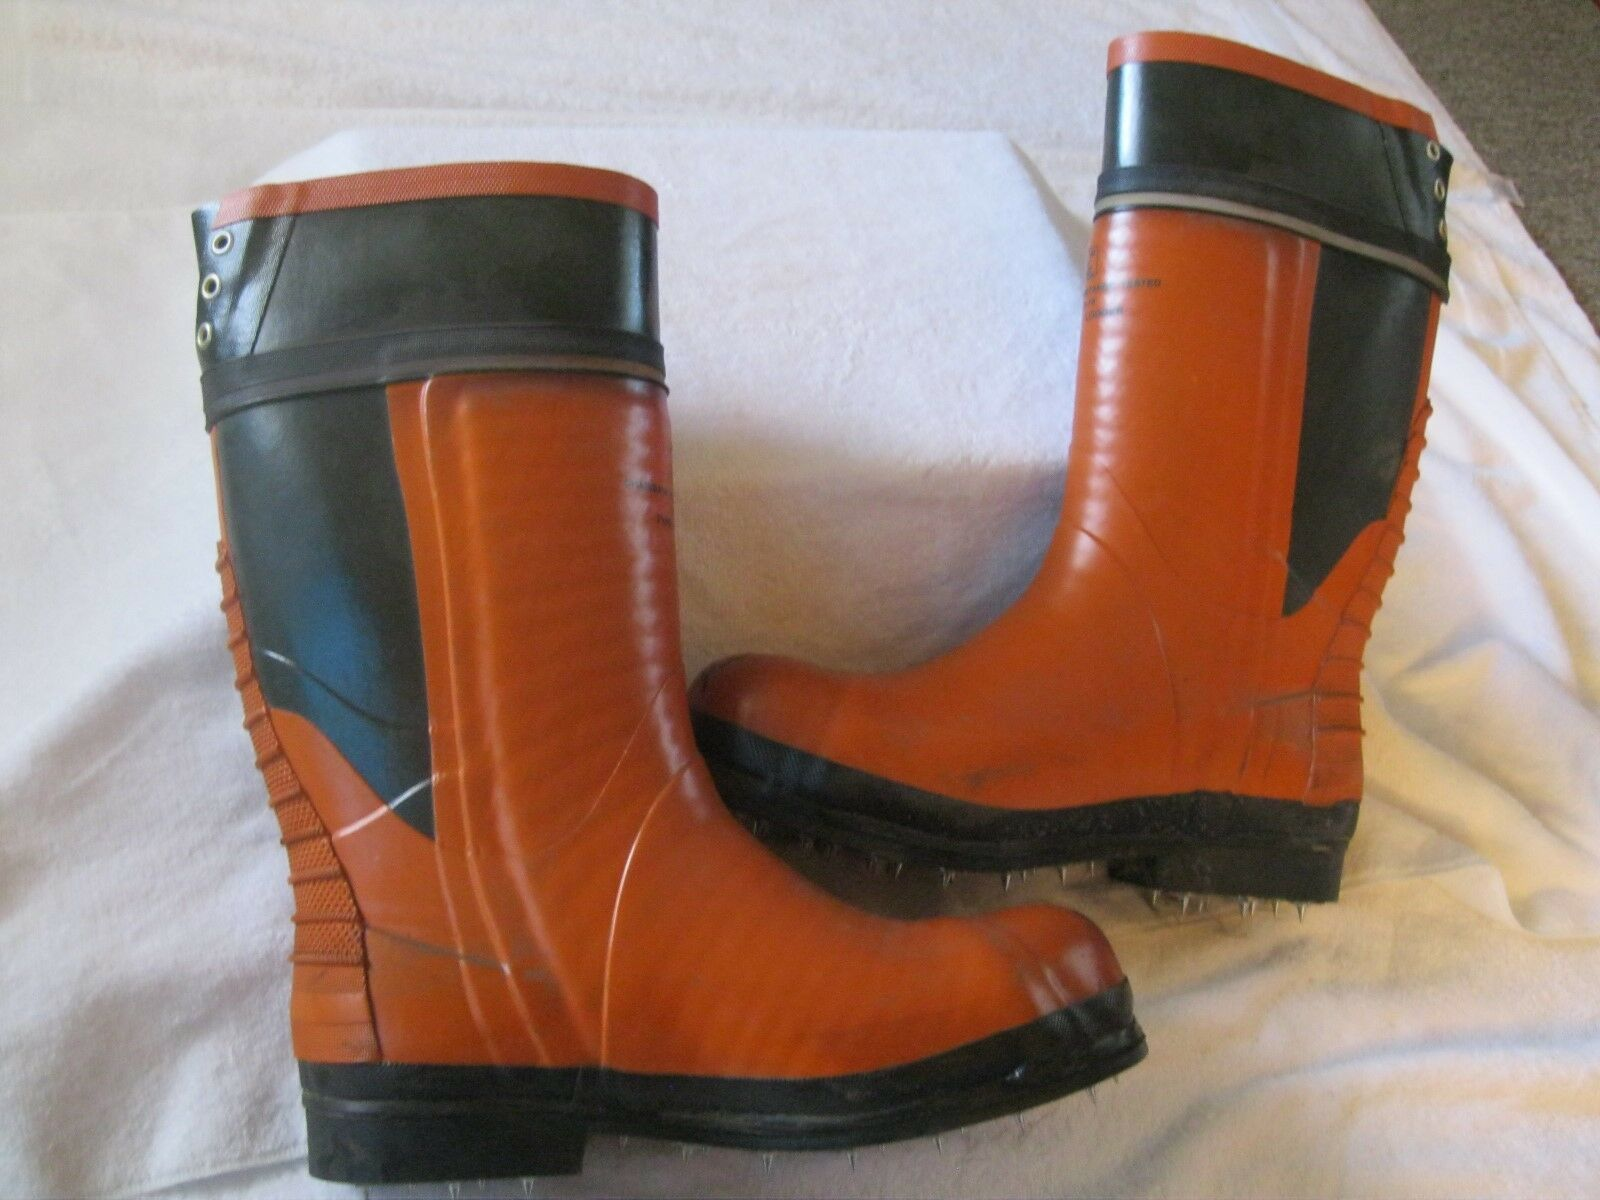 RARE Mens Harvik Logger Chain Saw Resistance, Grade 1 Champ Spiked Boots, SZ 9